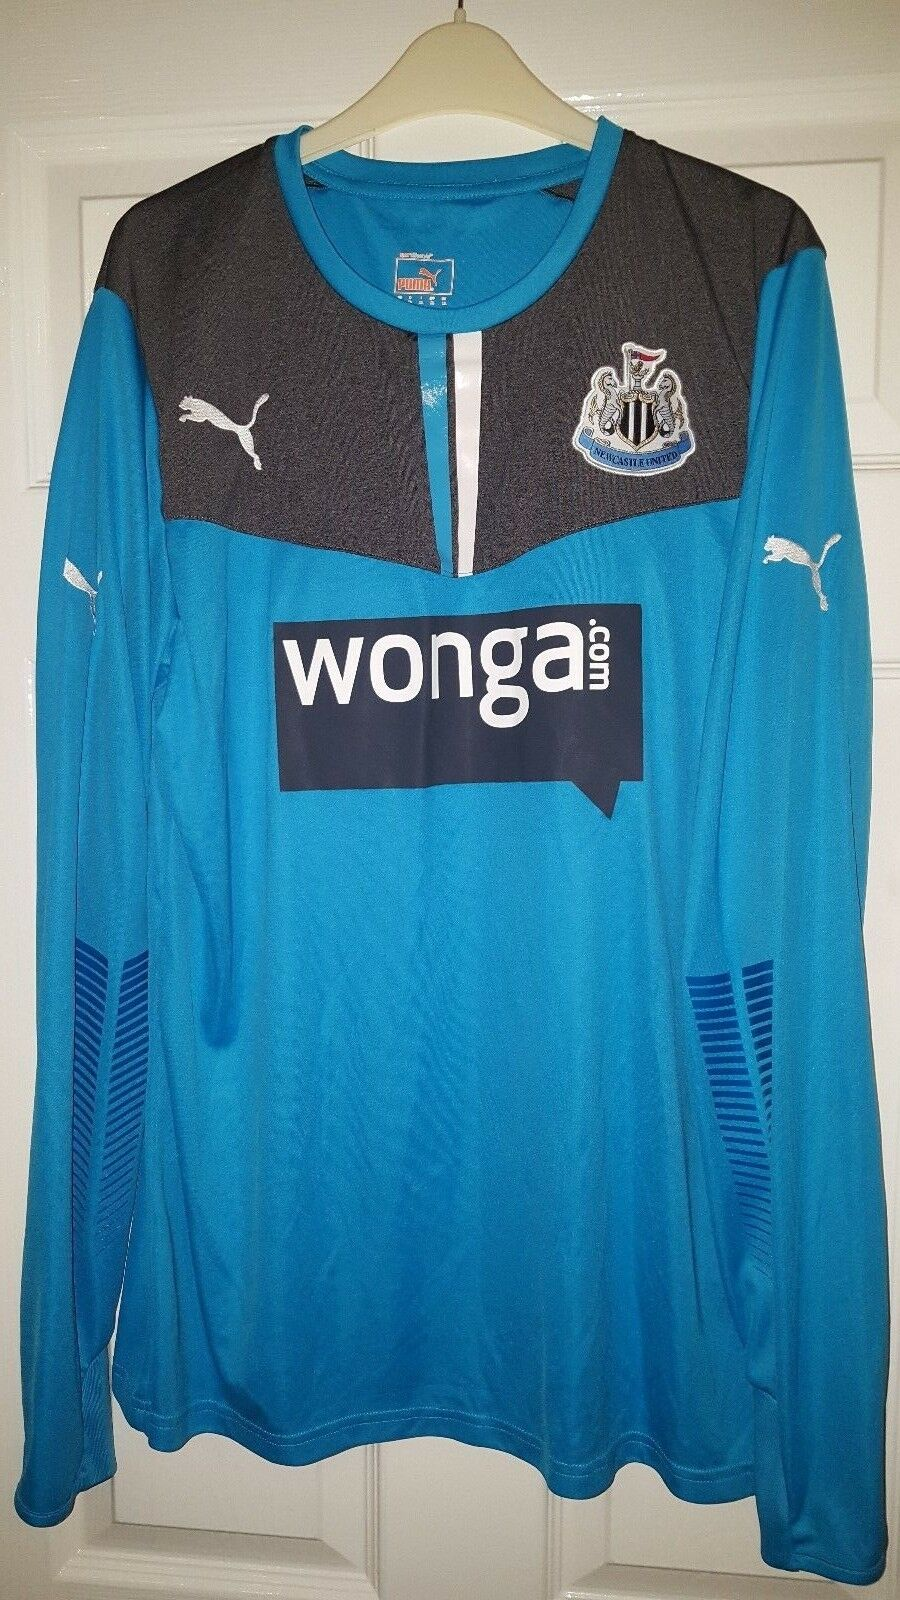 Camicia calcio da uomo-Newcastle United-Goal Keeper 2013 Manica Lunga-Puma XL